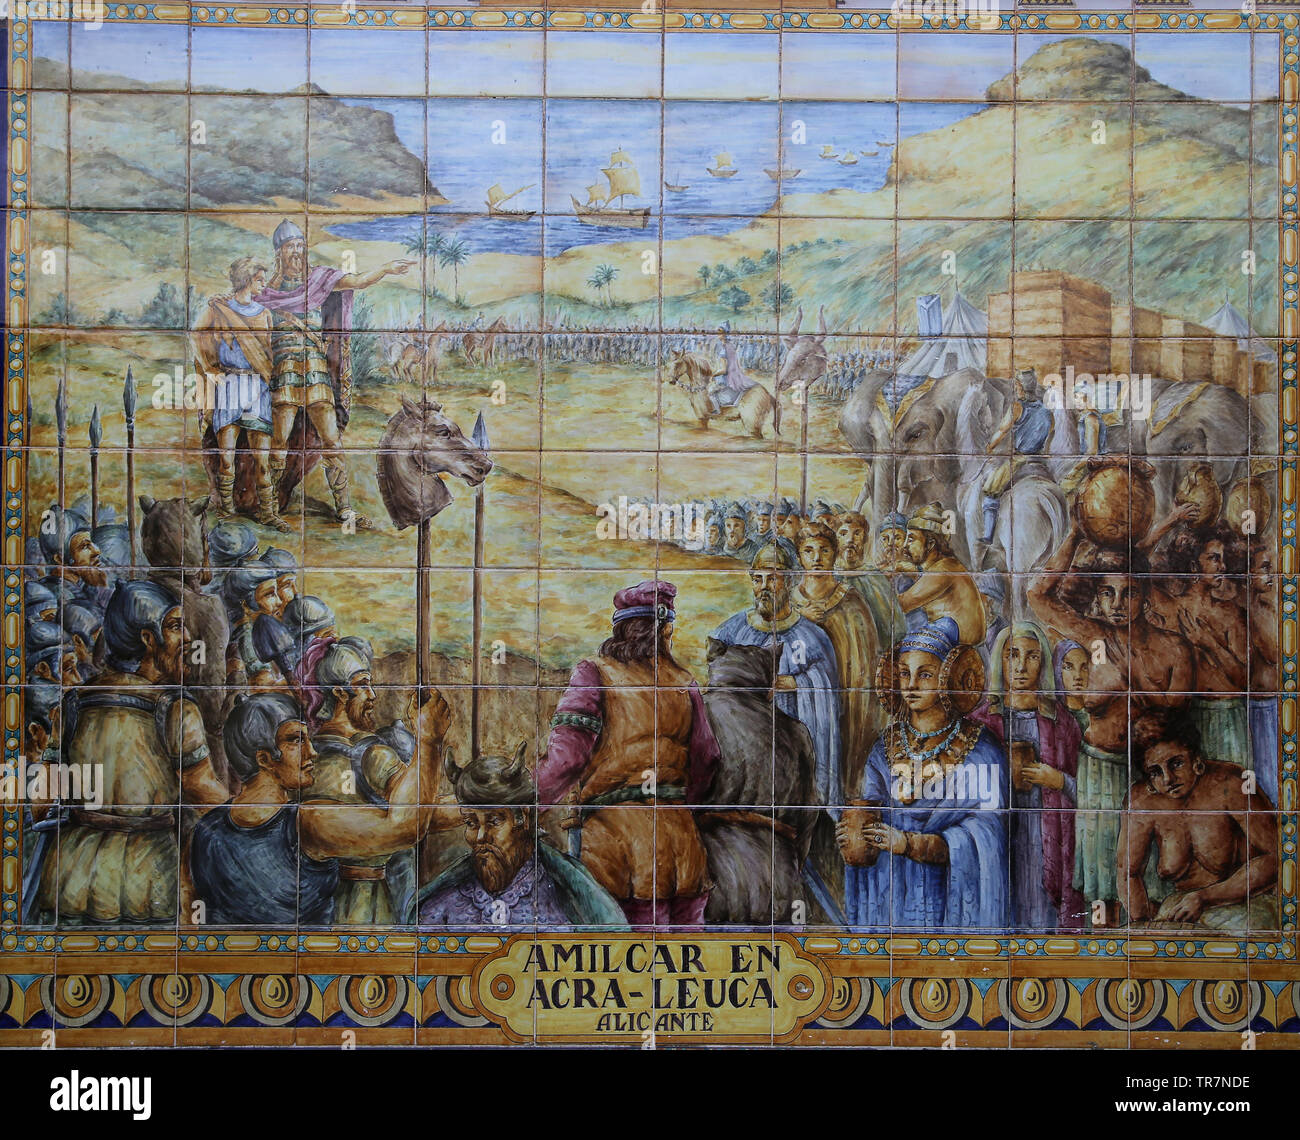 The Carthaginian general Hamilcar Barca (275-228 BC)founded Akra Keuka (Alicante). Ceramics tiles. Spain Square. Seville, Spain. - Stock Image